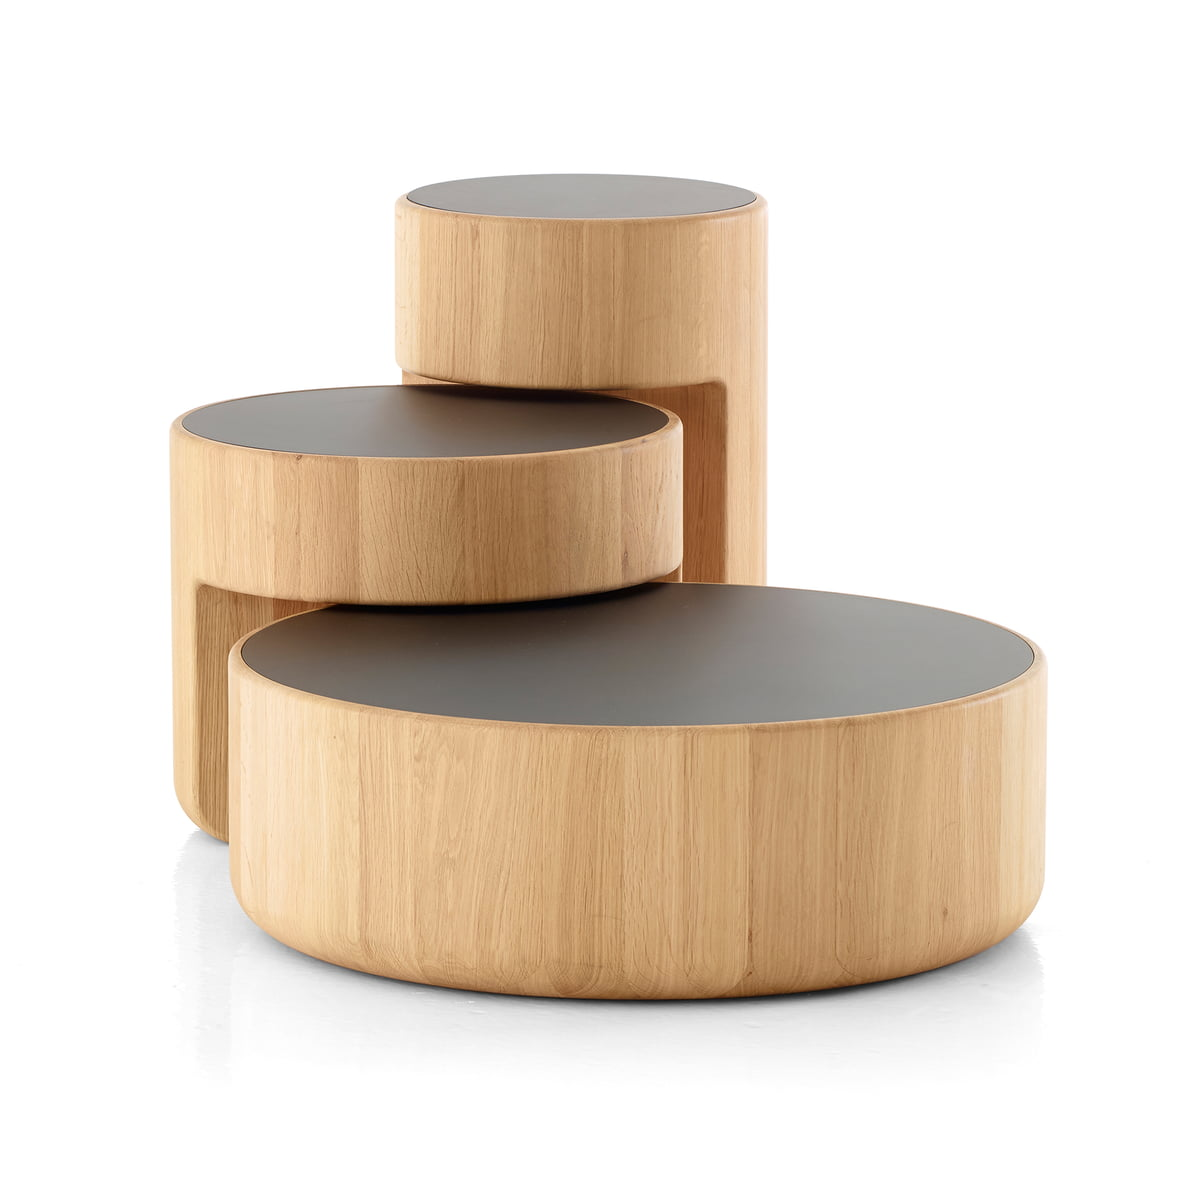 Levels Coffee Tables By Peruse In The